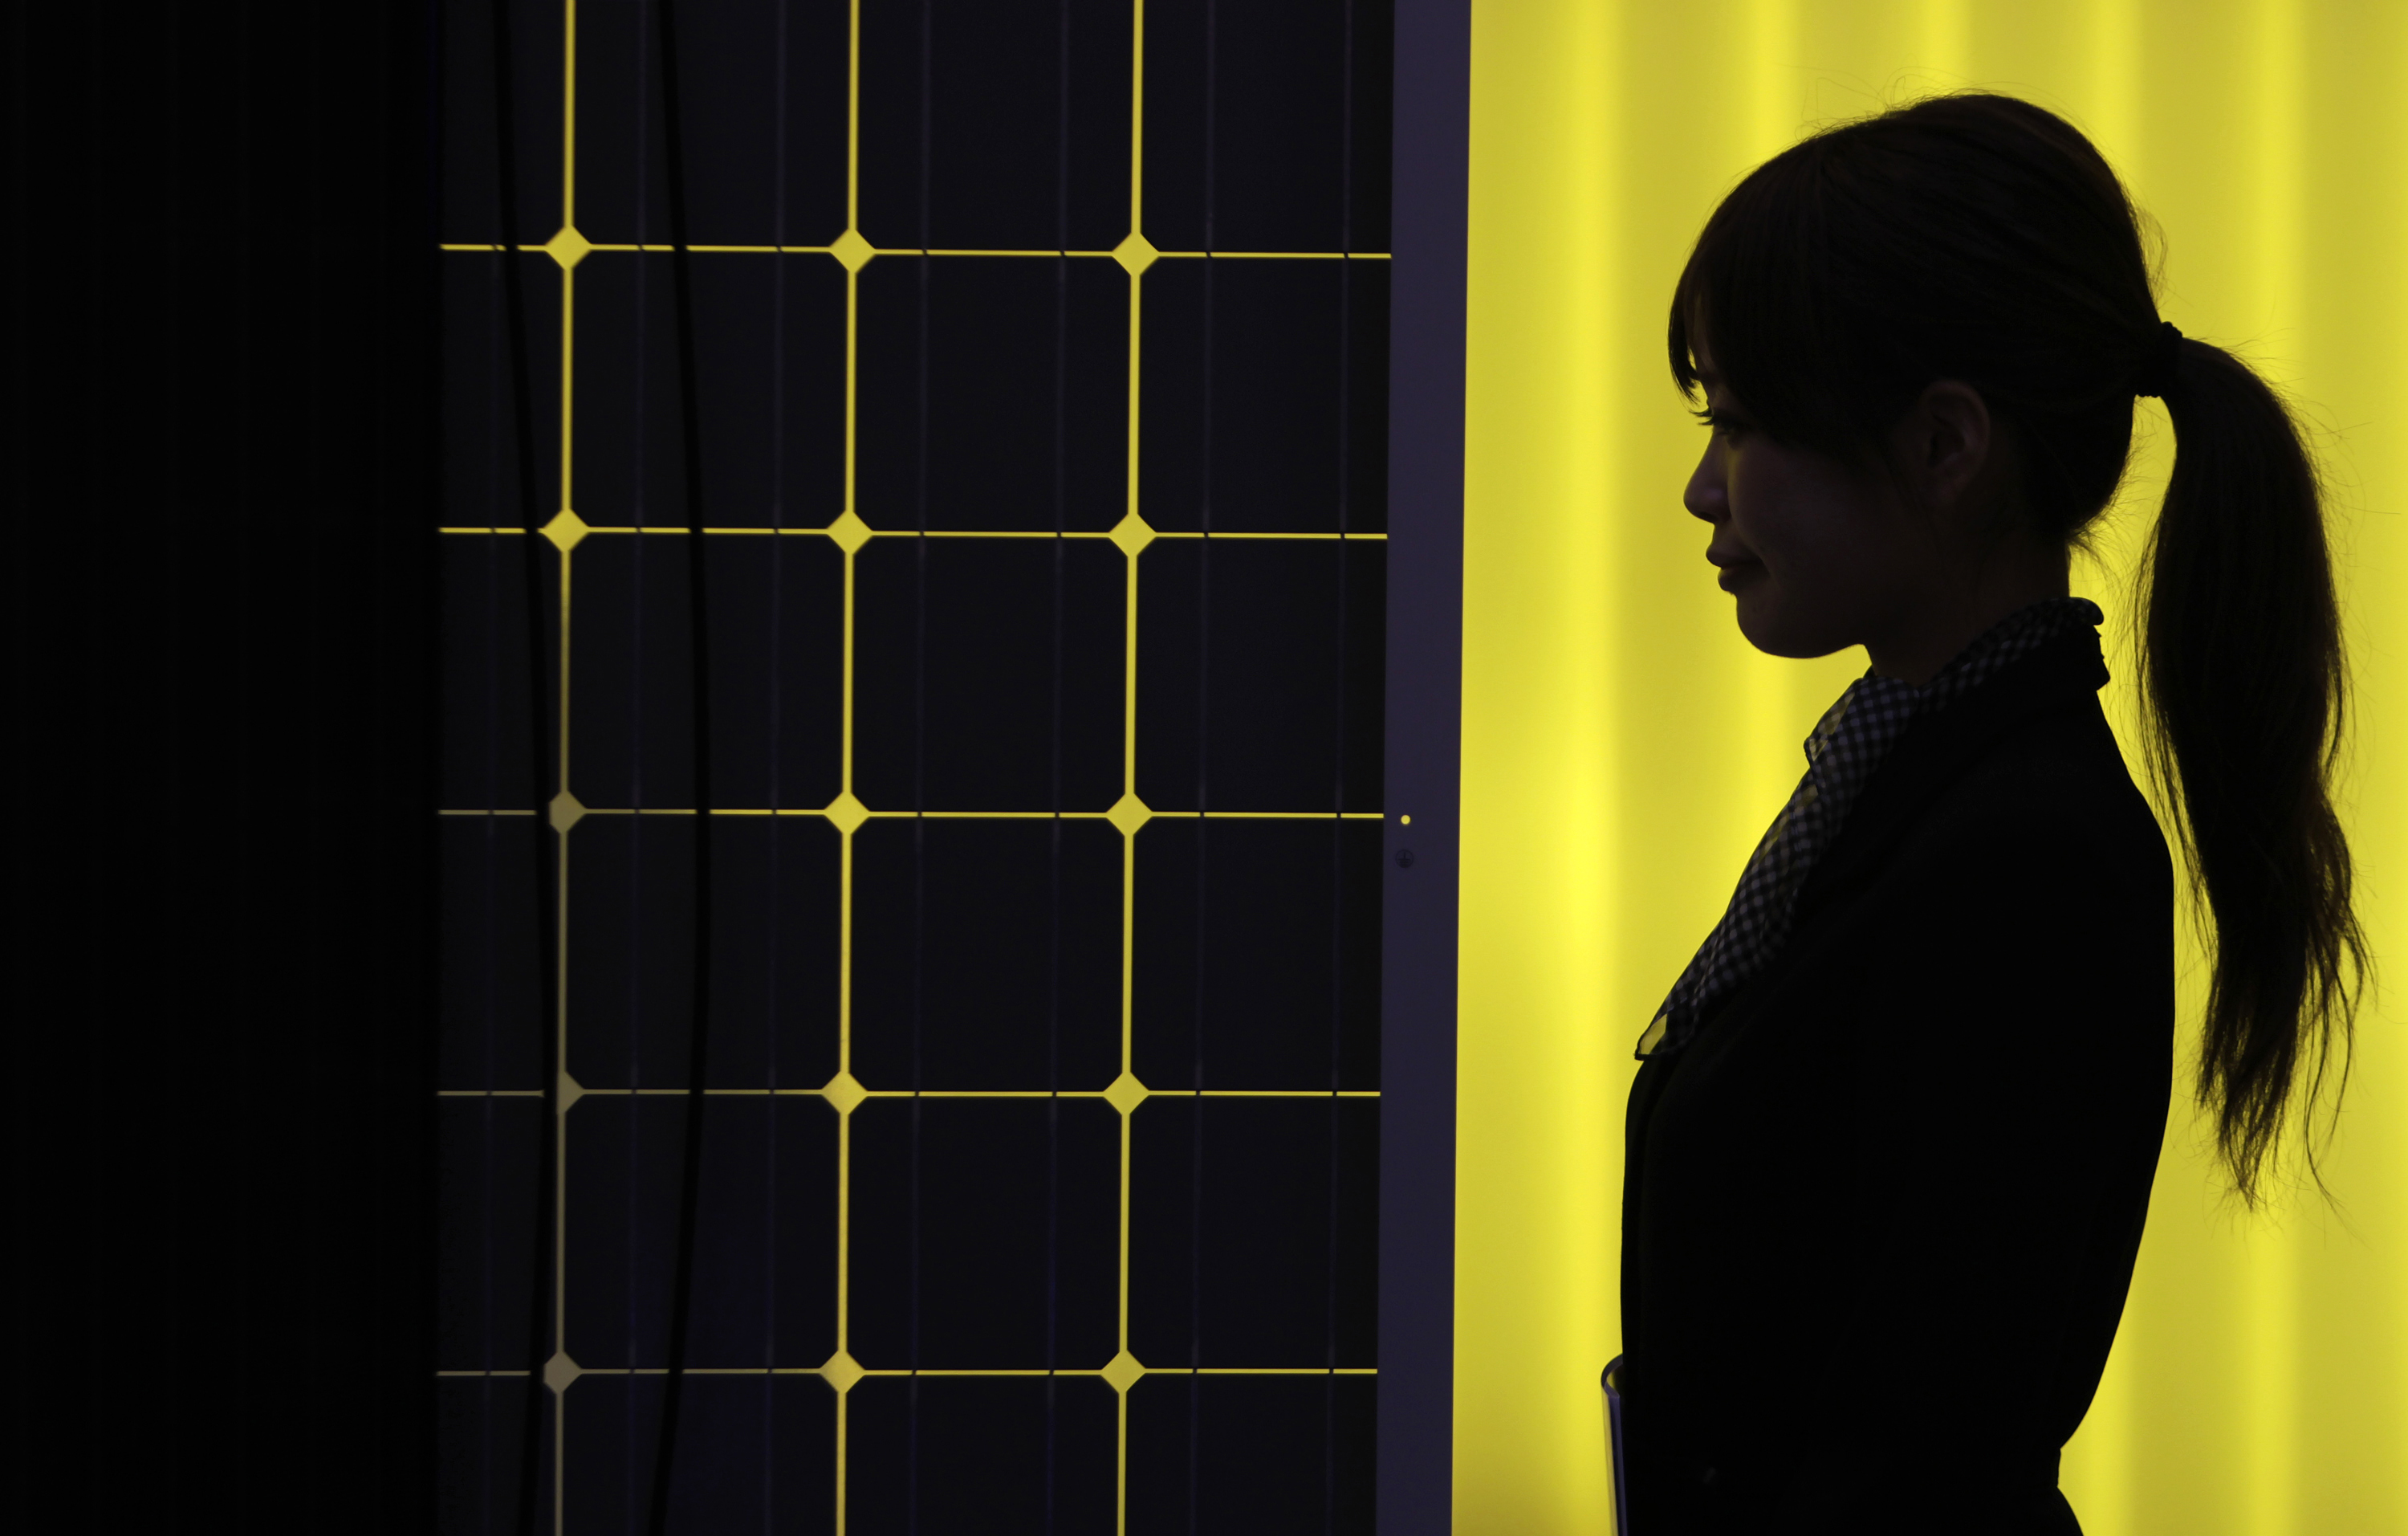 A woman is silhouetted next to a solar panel display by solar module supplier Upsolar at the fourth International Photovoltaic Power Generation (PV) Expo in Tokyo March 2, 2011. More than 600 companies in the solar energy business from 18 countries are taking part in the March 2-4 expo, which showcases firms and products related to photovoltaic power generation, according to the organiser. REUTERS/Yuriko Nakao (JAPAN - Tags: BUSINESS SCI TECH ENVIRONMENT) - GM1E7321H1O01